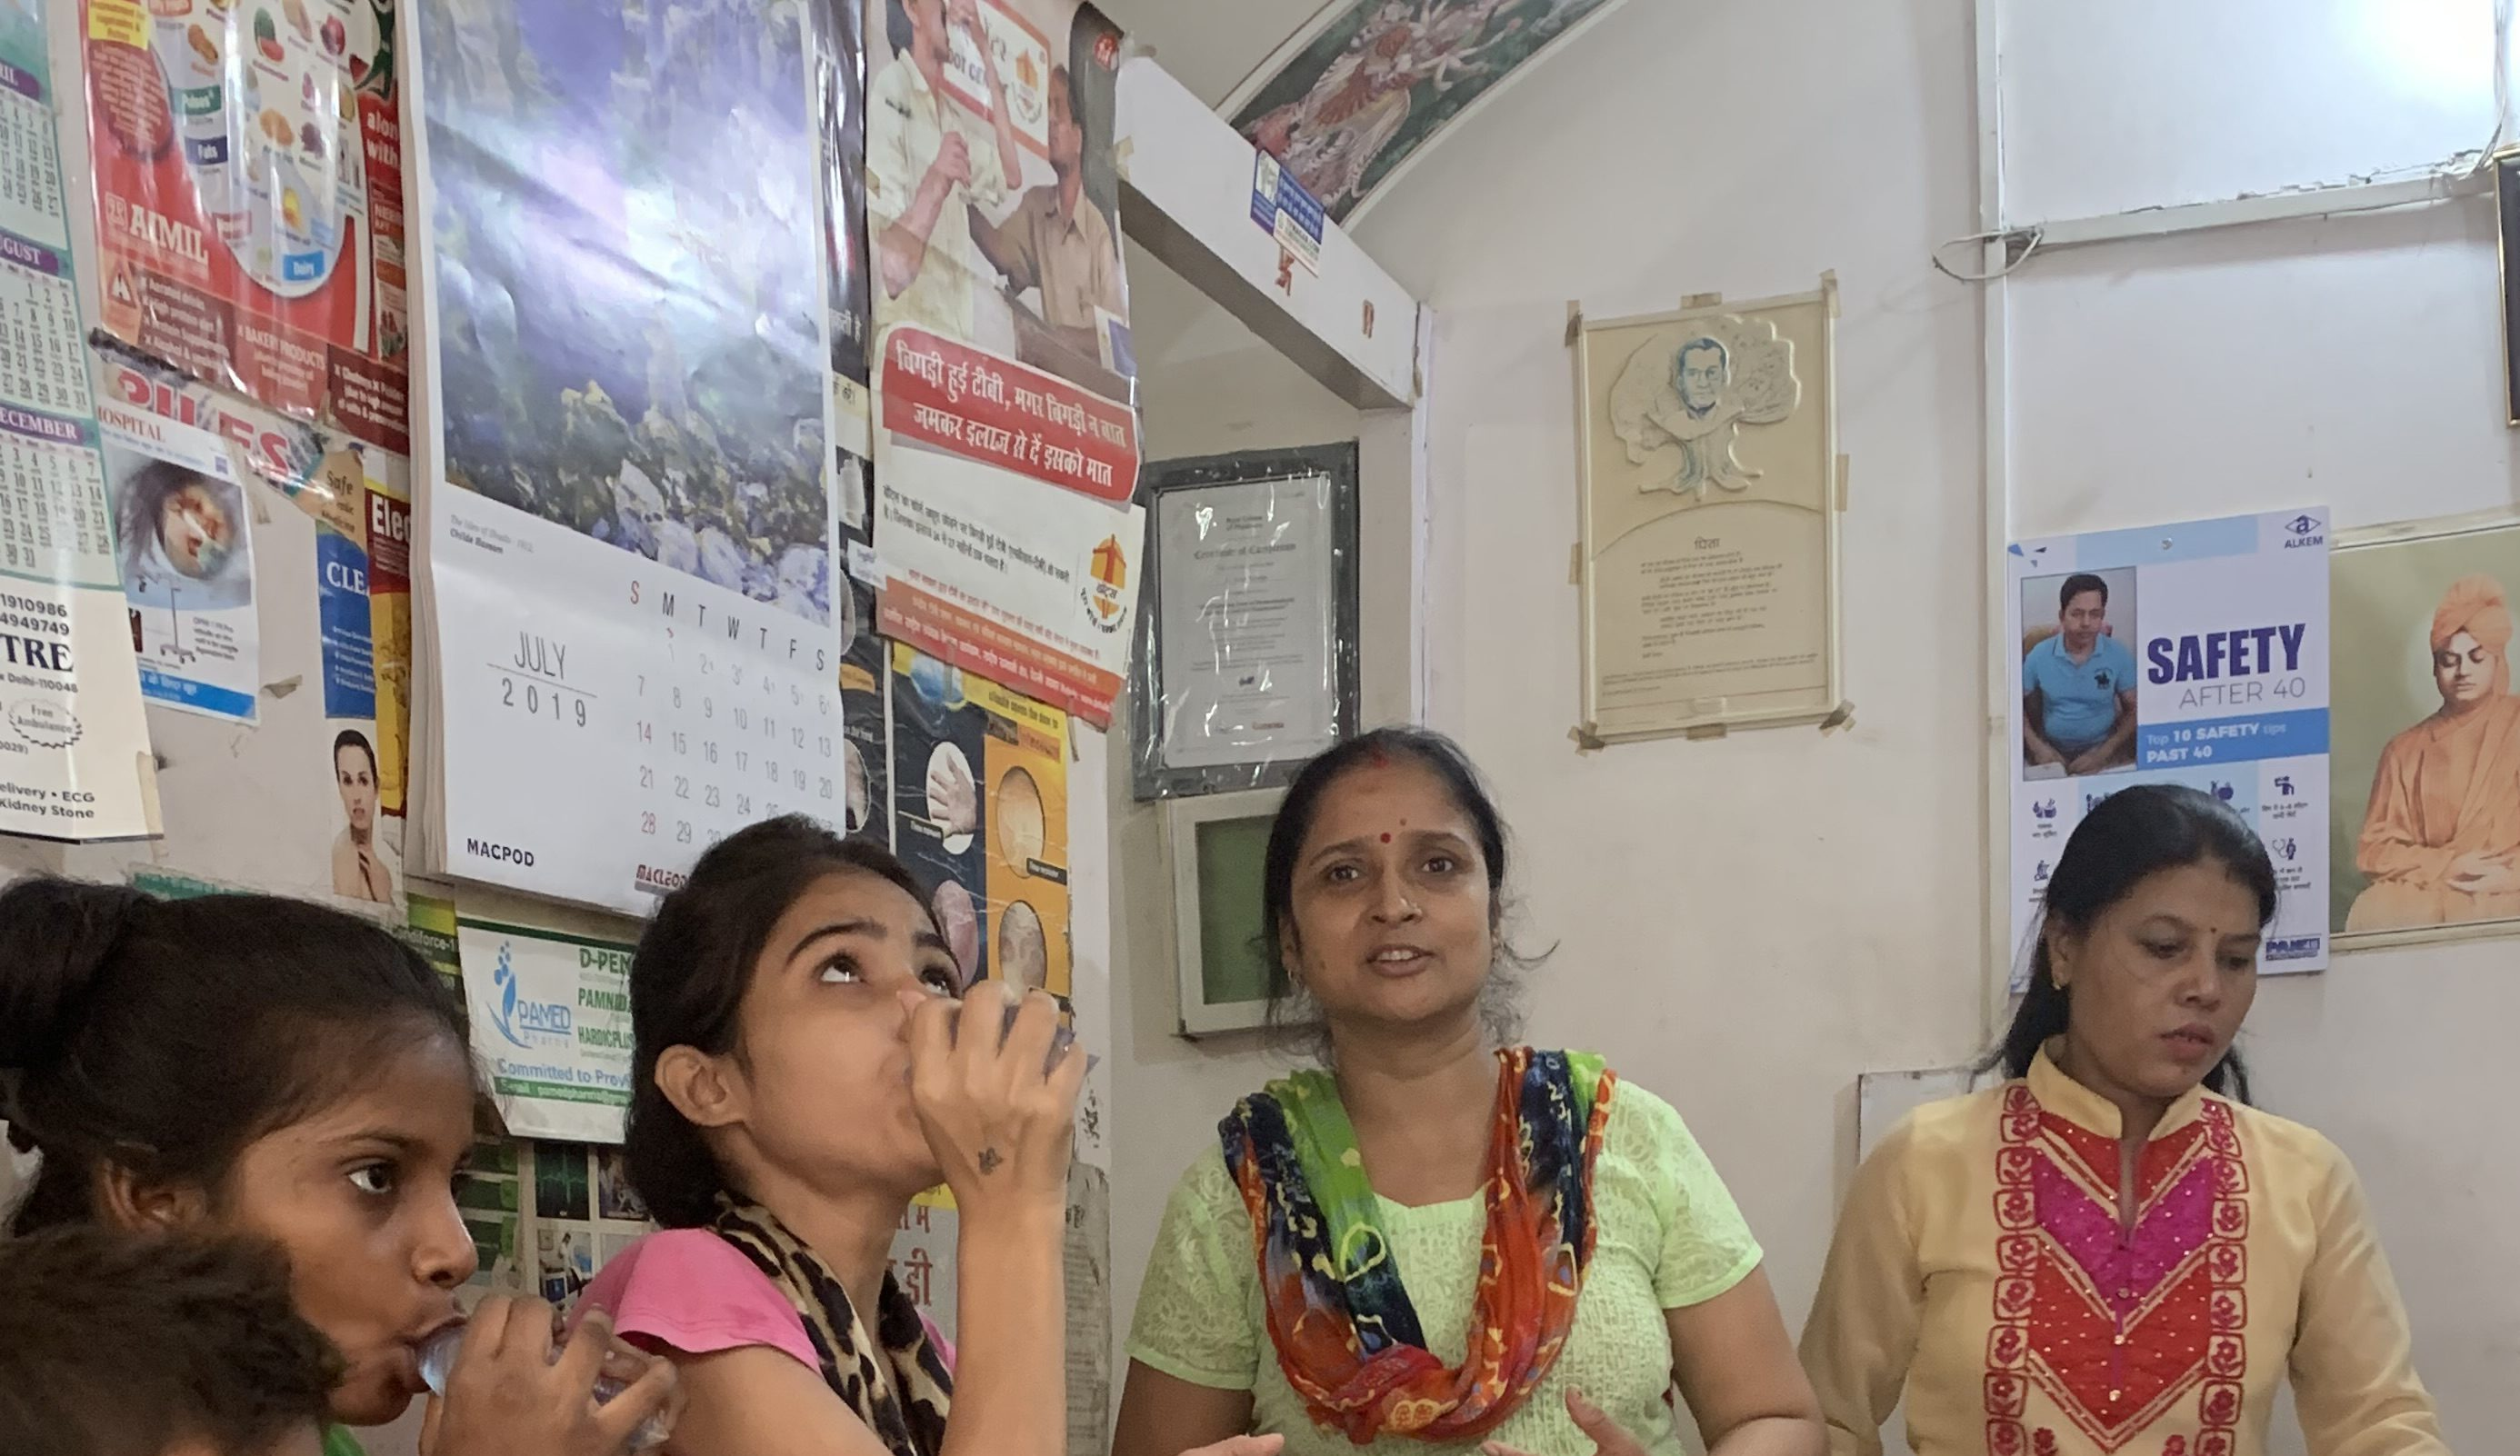 Community health workers administer TB medication to patients at a pop-up community health center in Tekhand Village India